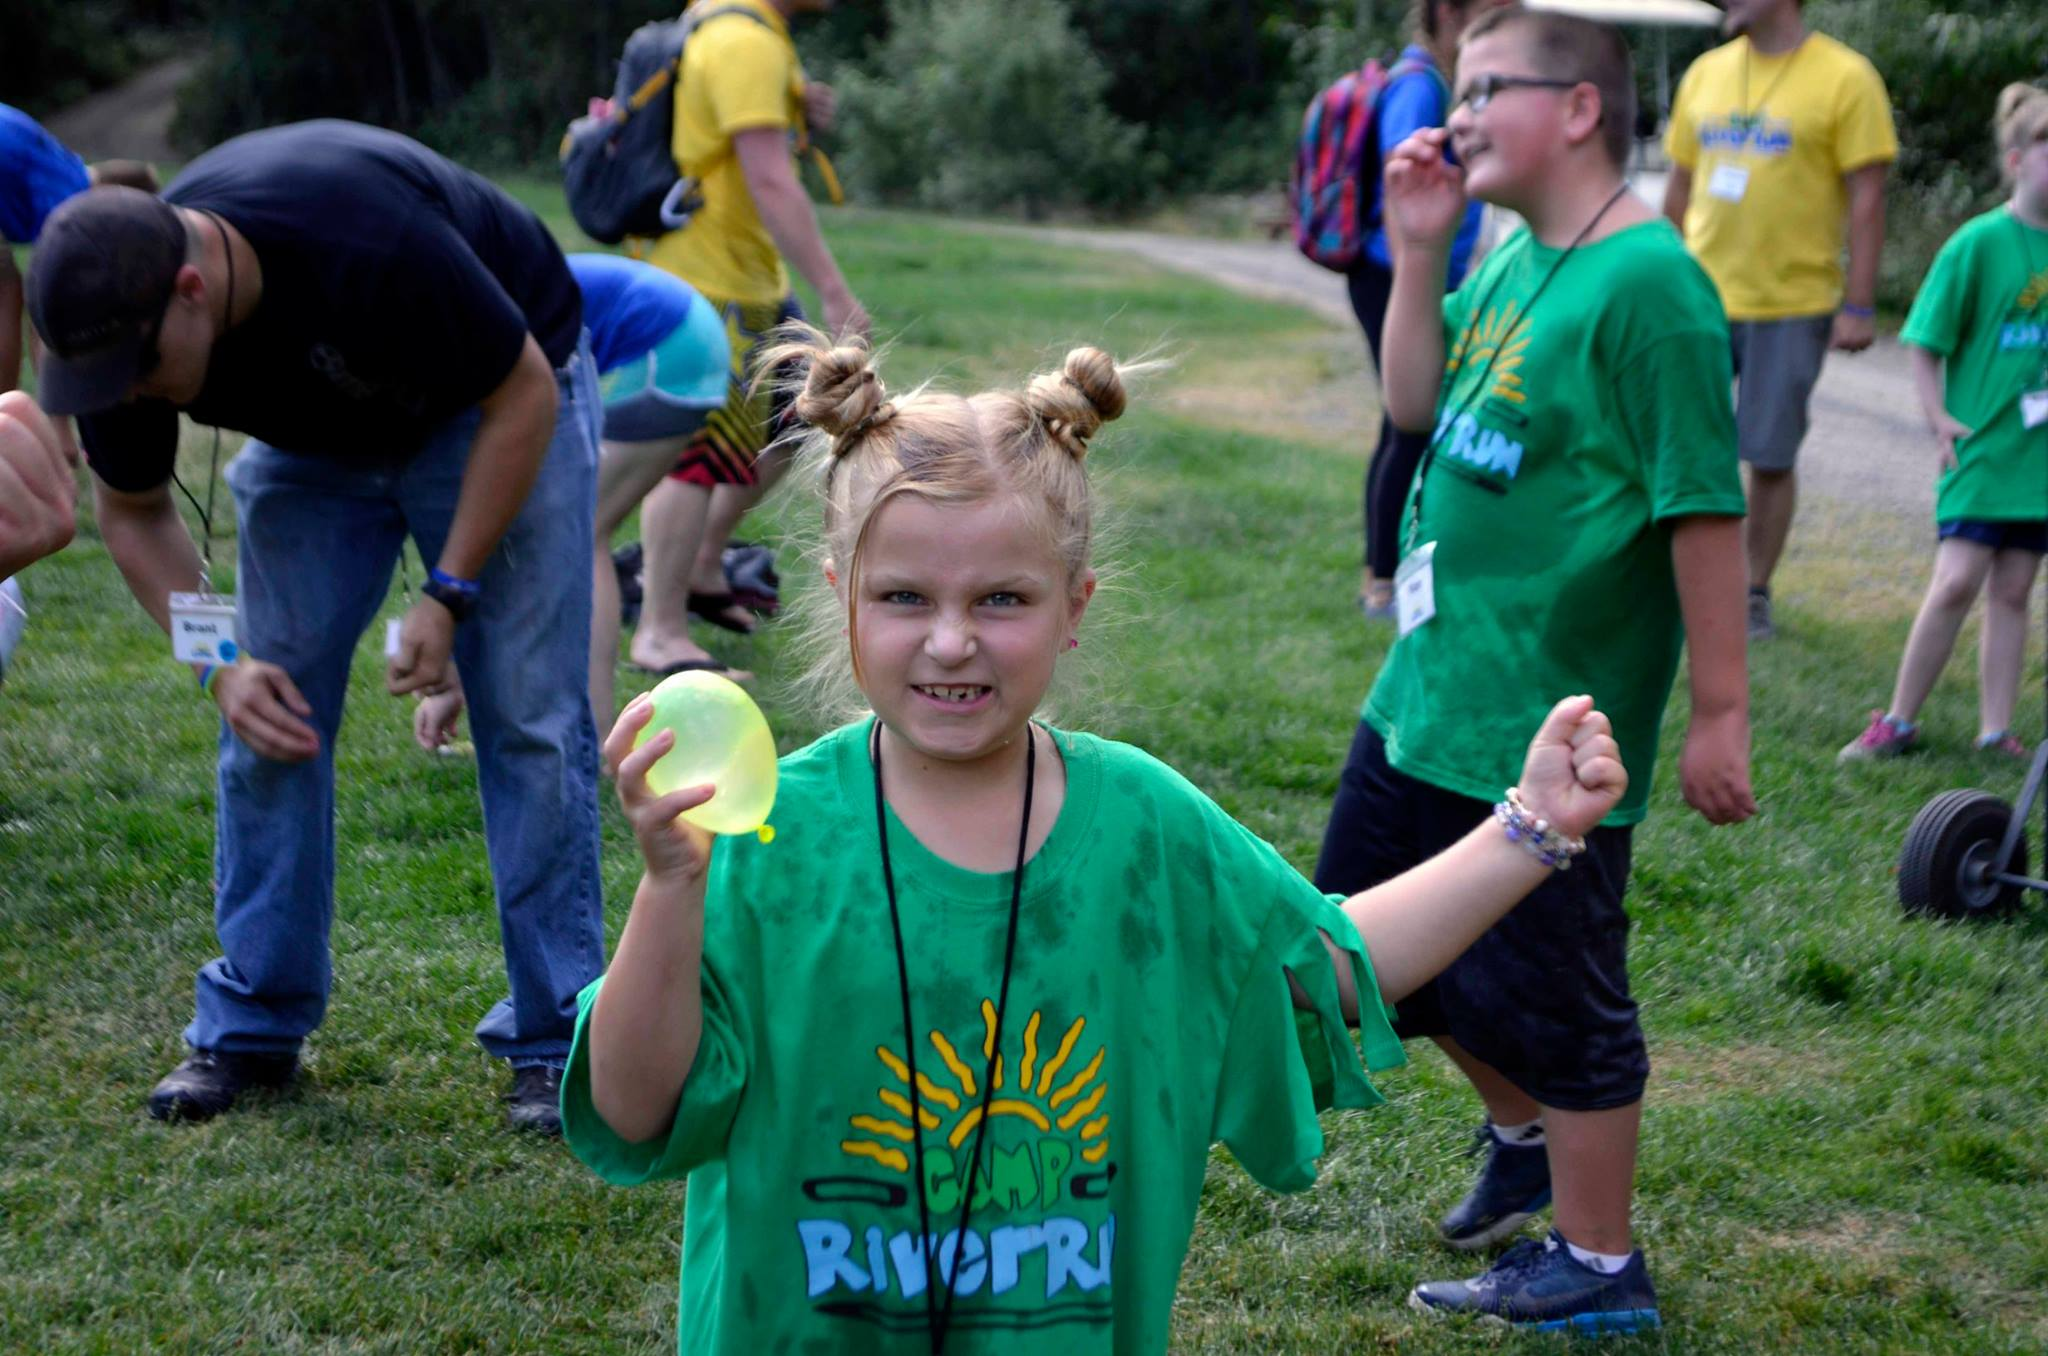 The camp is for kids ages 7-17 Courtesy: Camp River Run